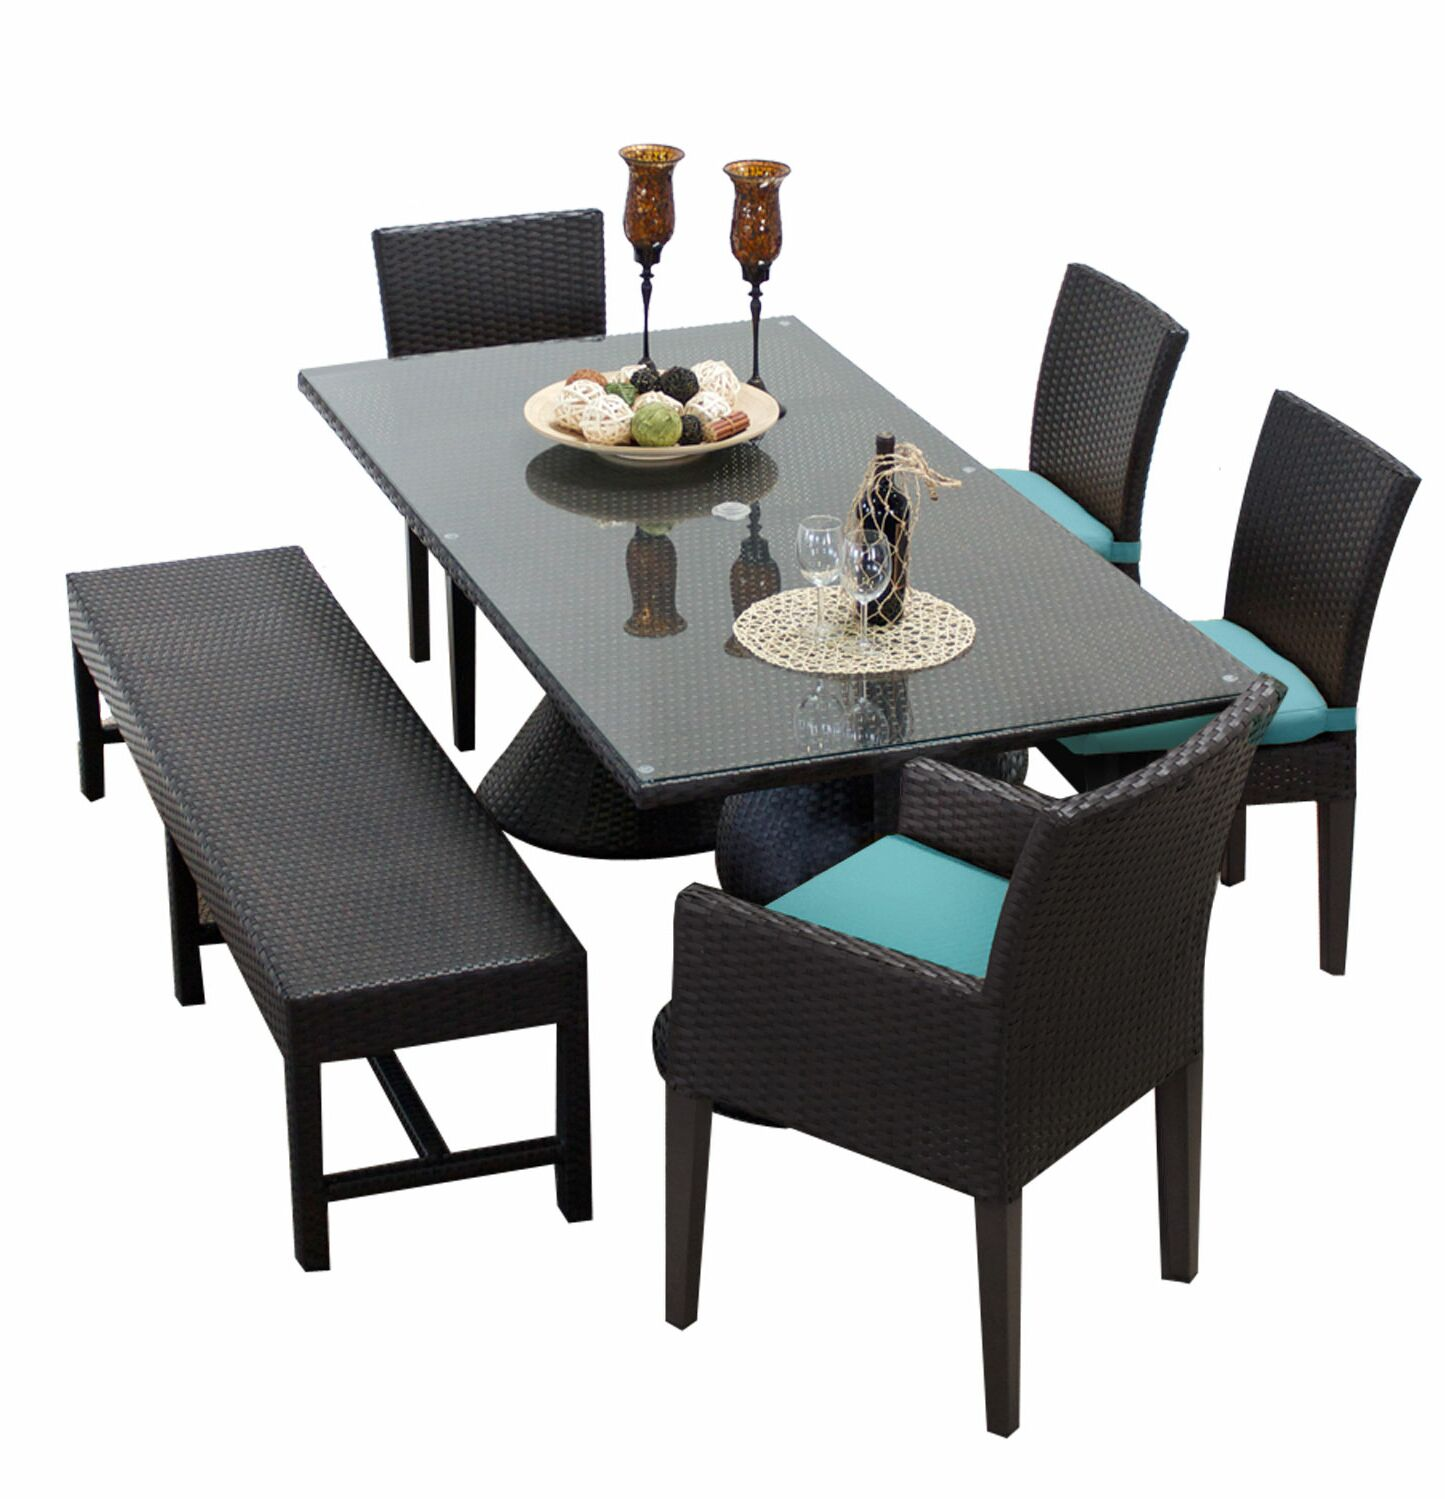 Napa 6 Piece Dining Set with Cushions Cushion Color: Navy